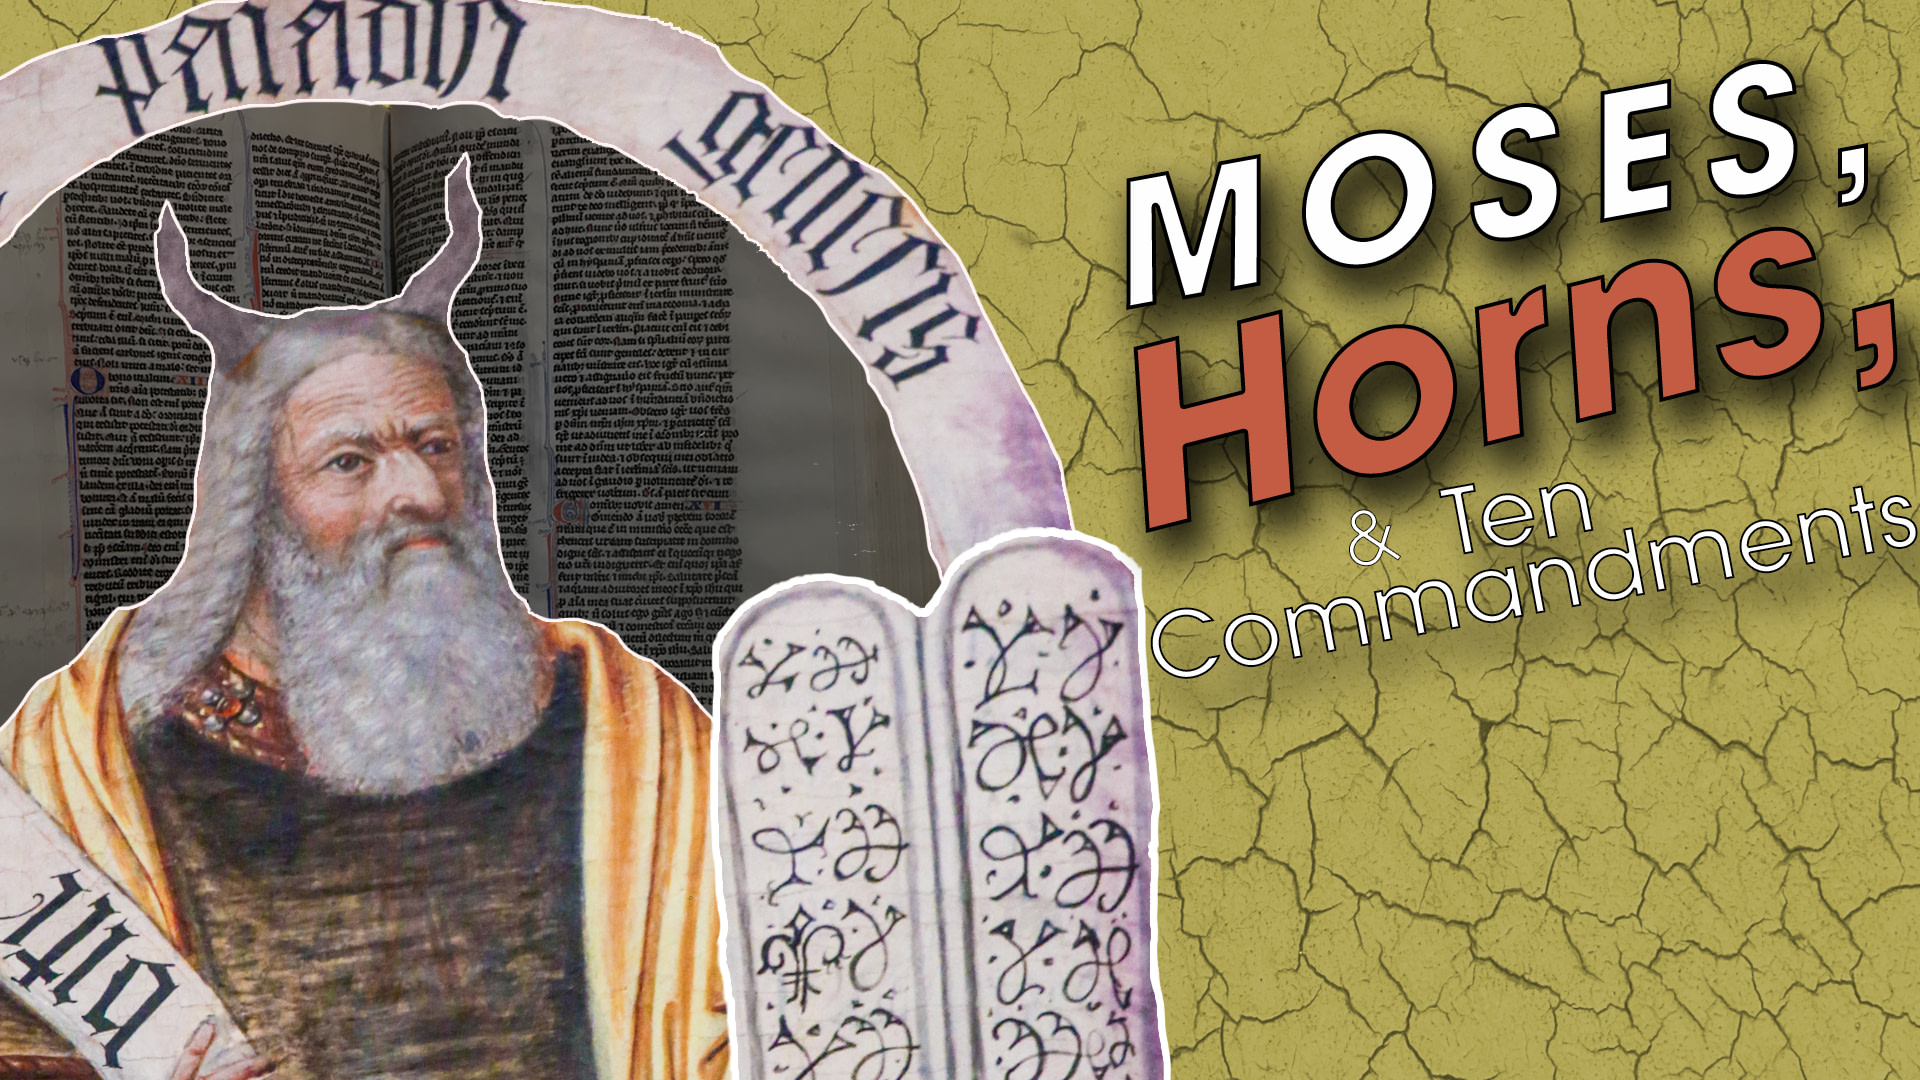 Moses, Horns, and the Ten Commandments